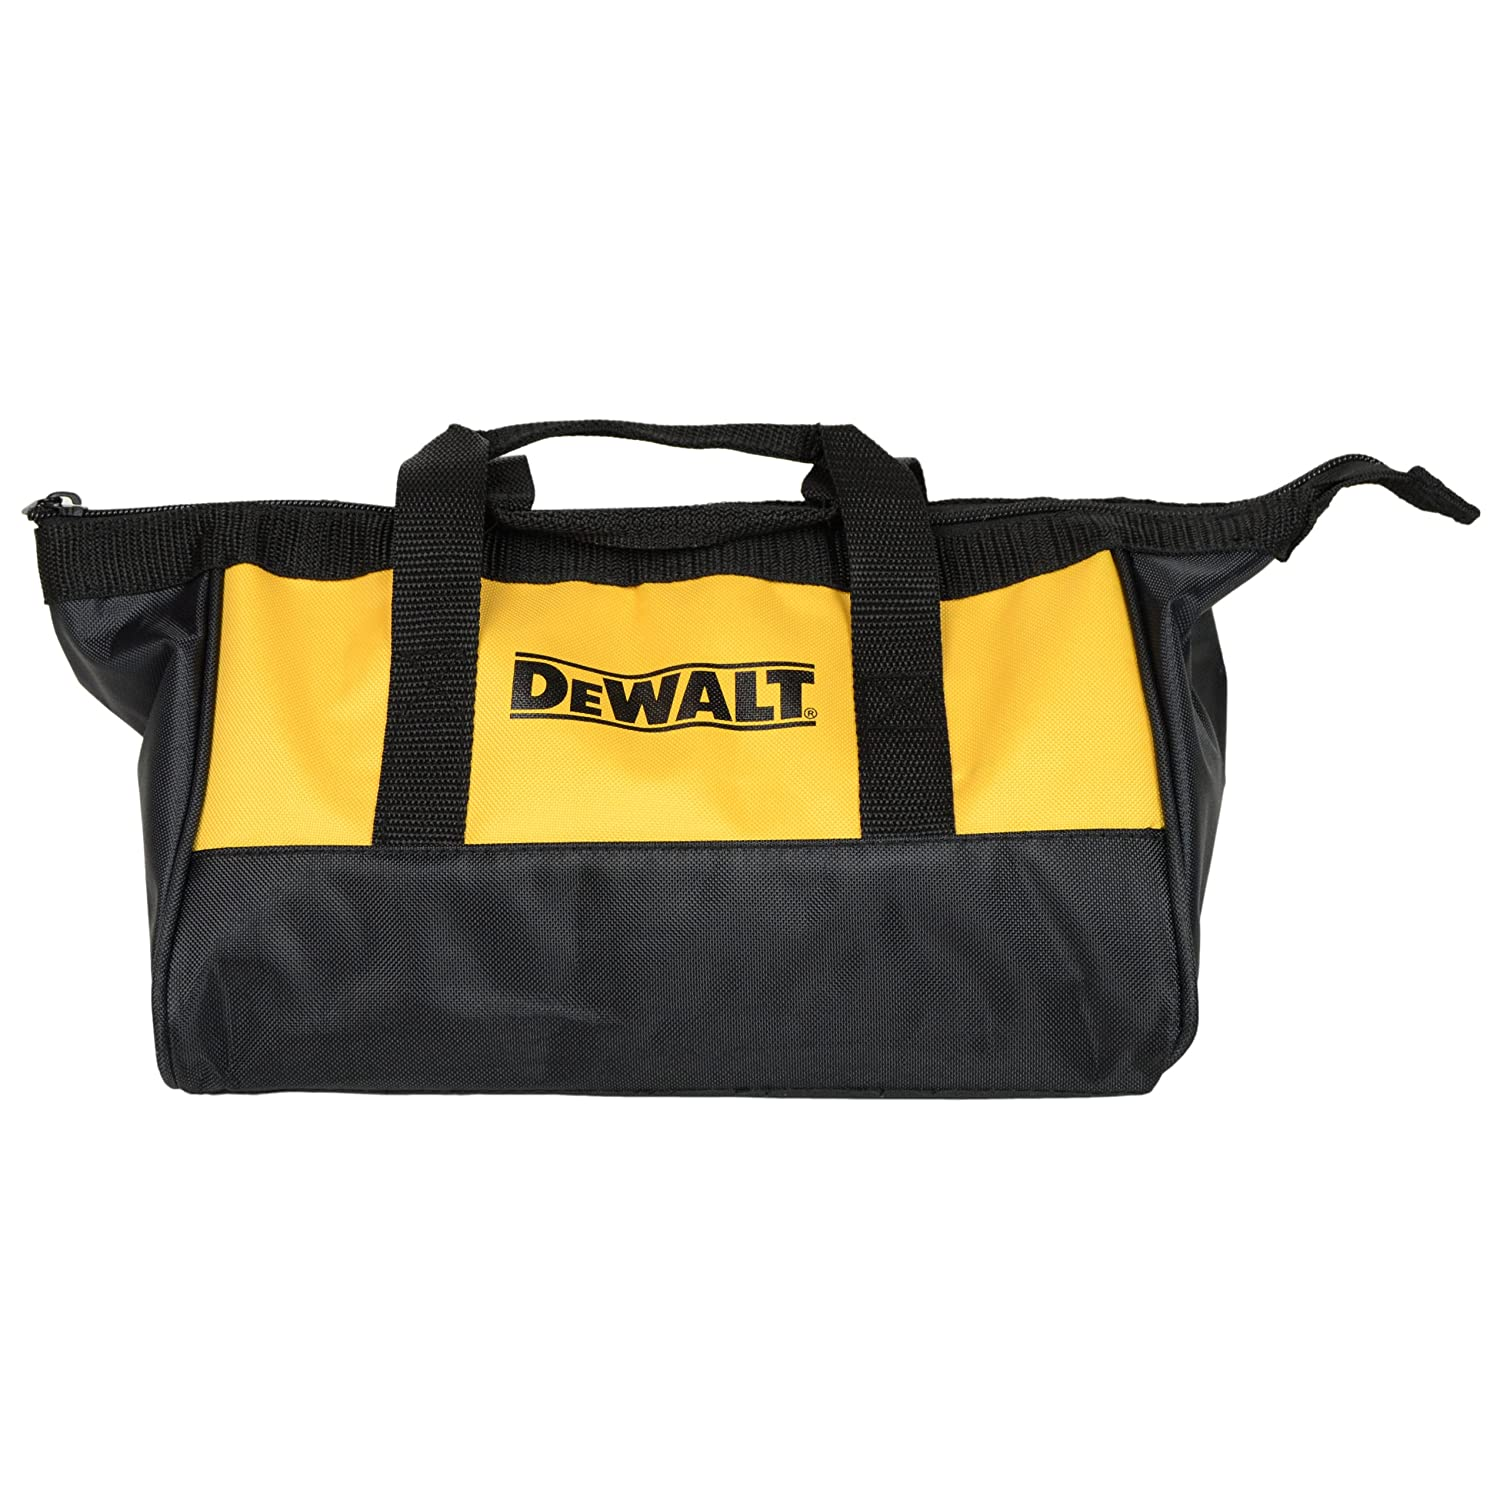 233f0a601a0c Dewalt Large Duffle Bag With Wheels- Fenix Toulouse Handball